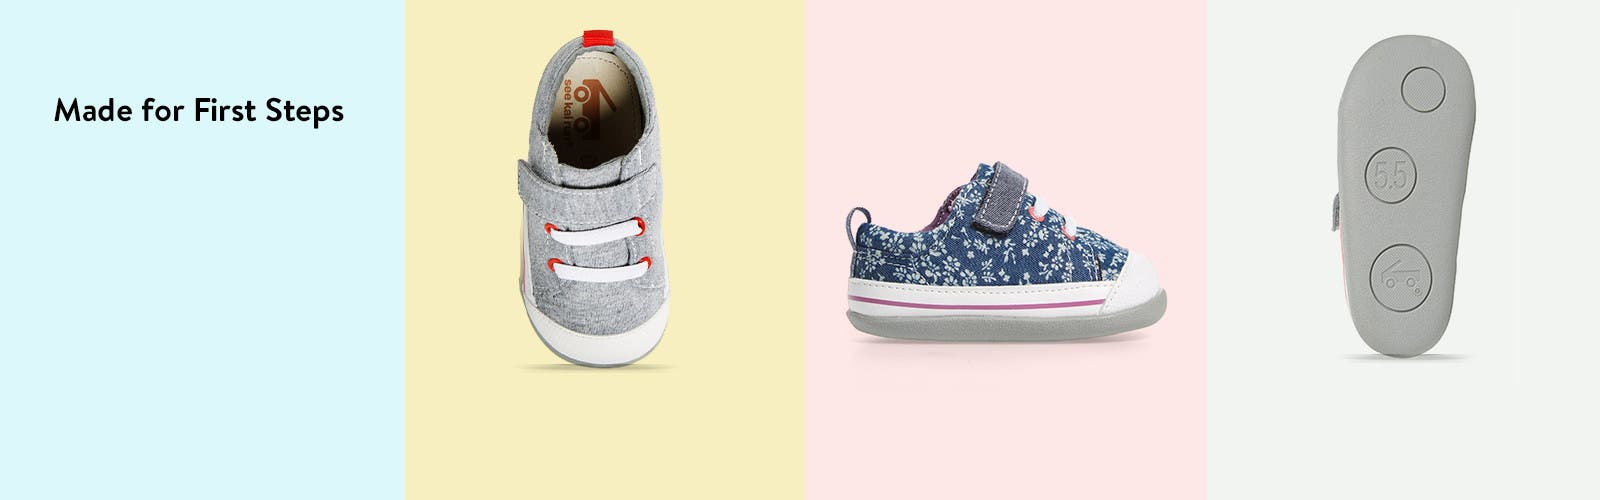 Baby's Shoes: First Walkers | Nordstrom